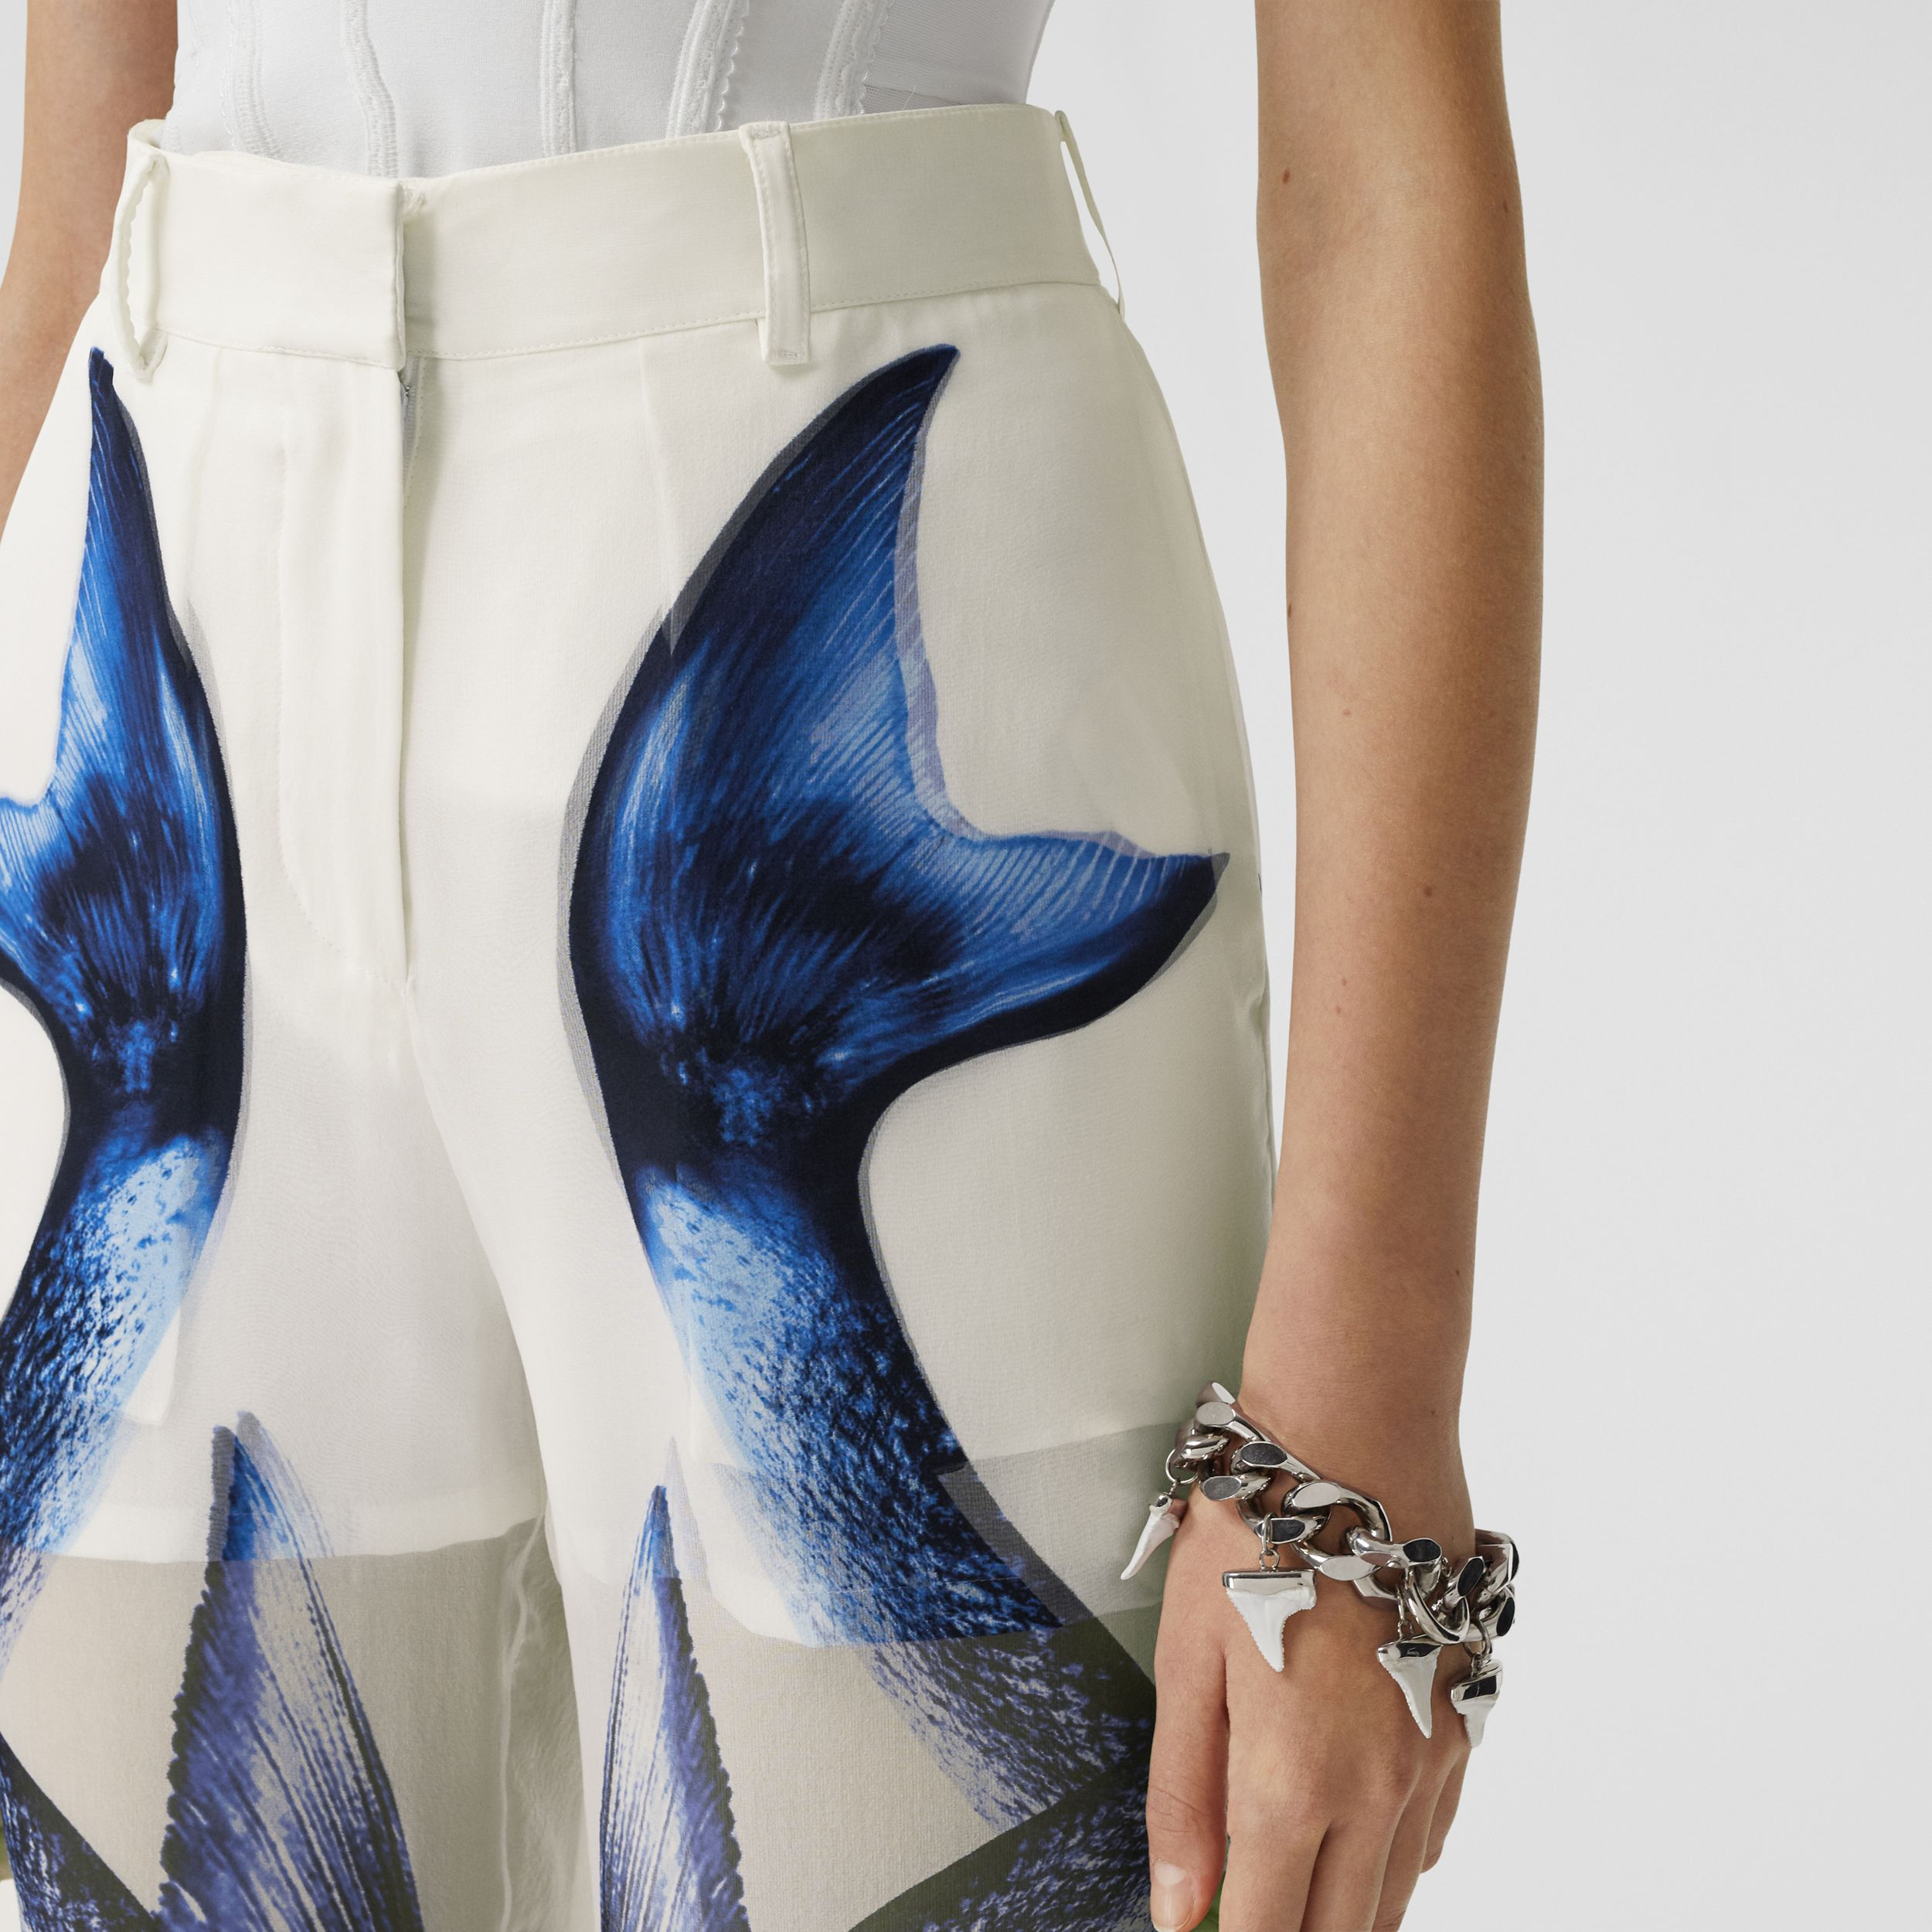 Mermaid Tail Print Chiffon Overlay Silk Shorts in White - Women | Burberry United Kingdom - 2